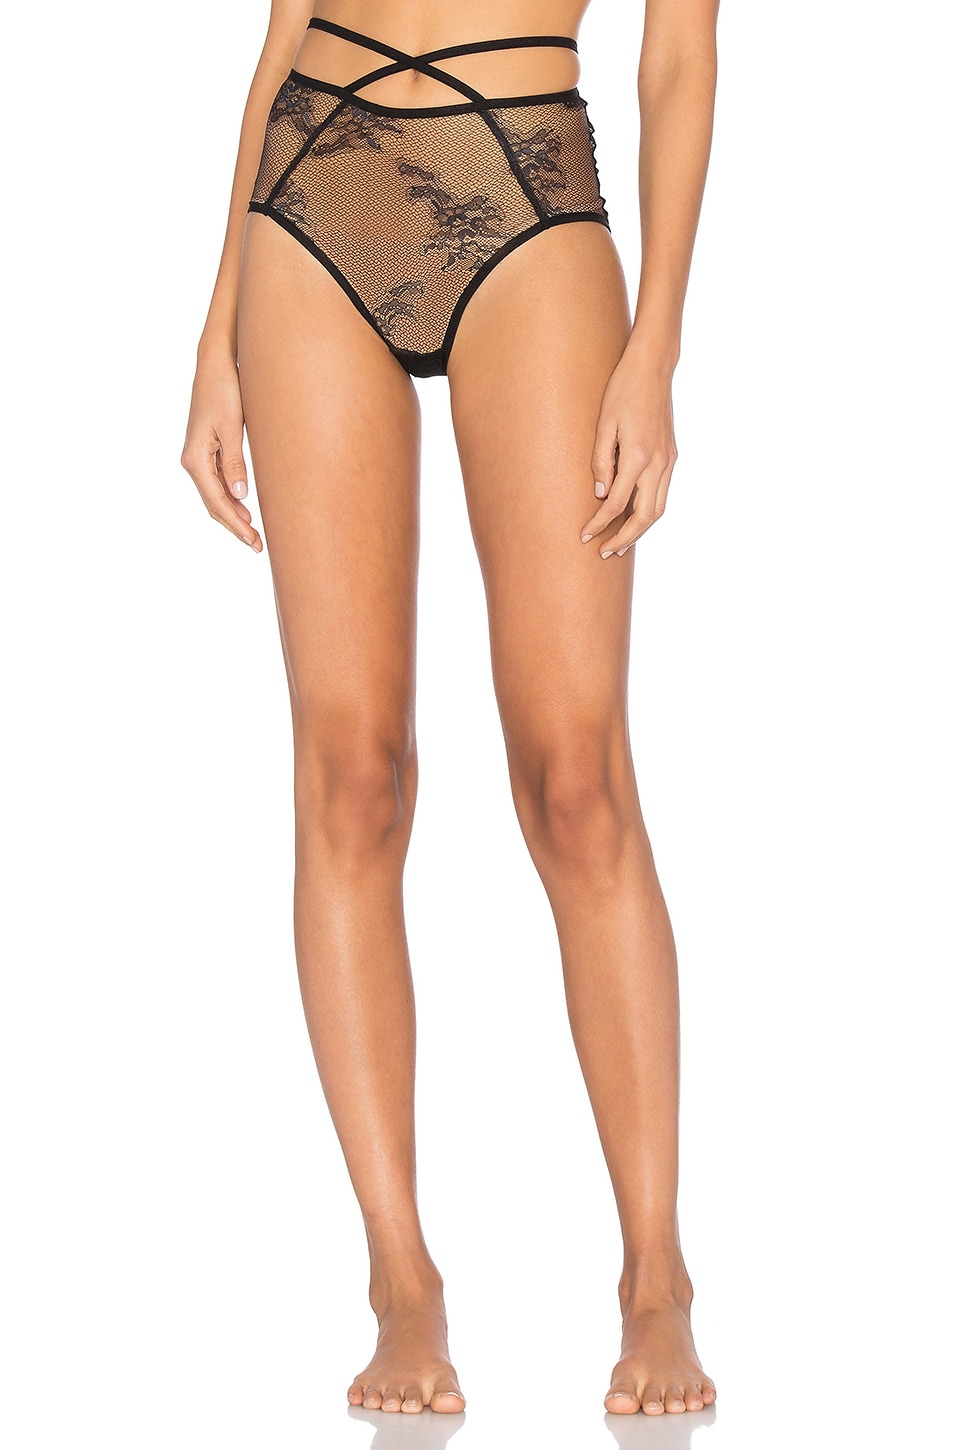 Miss Ruby High Waist Brief by Only Hearts